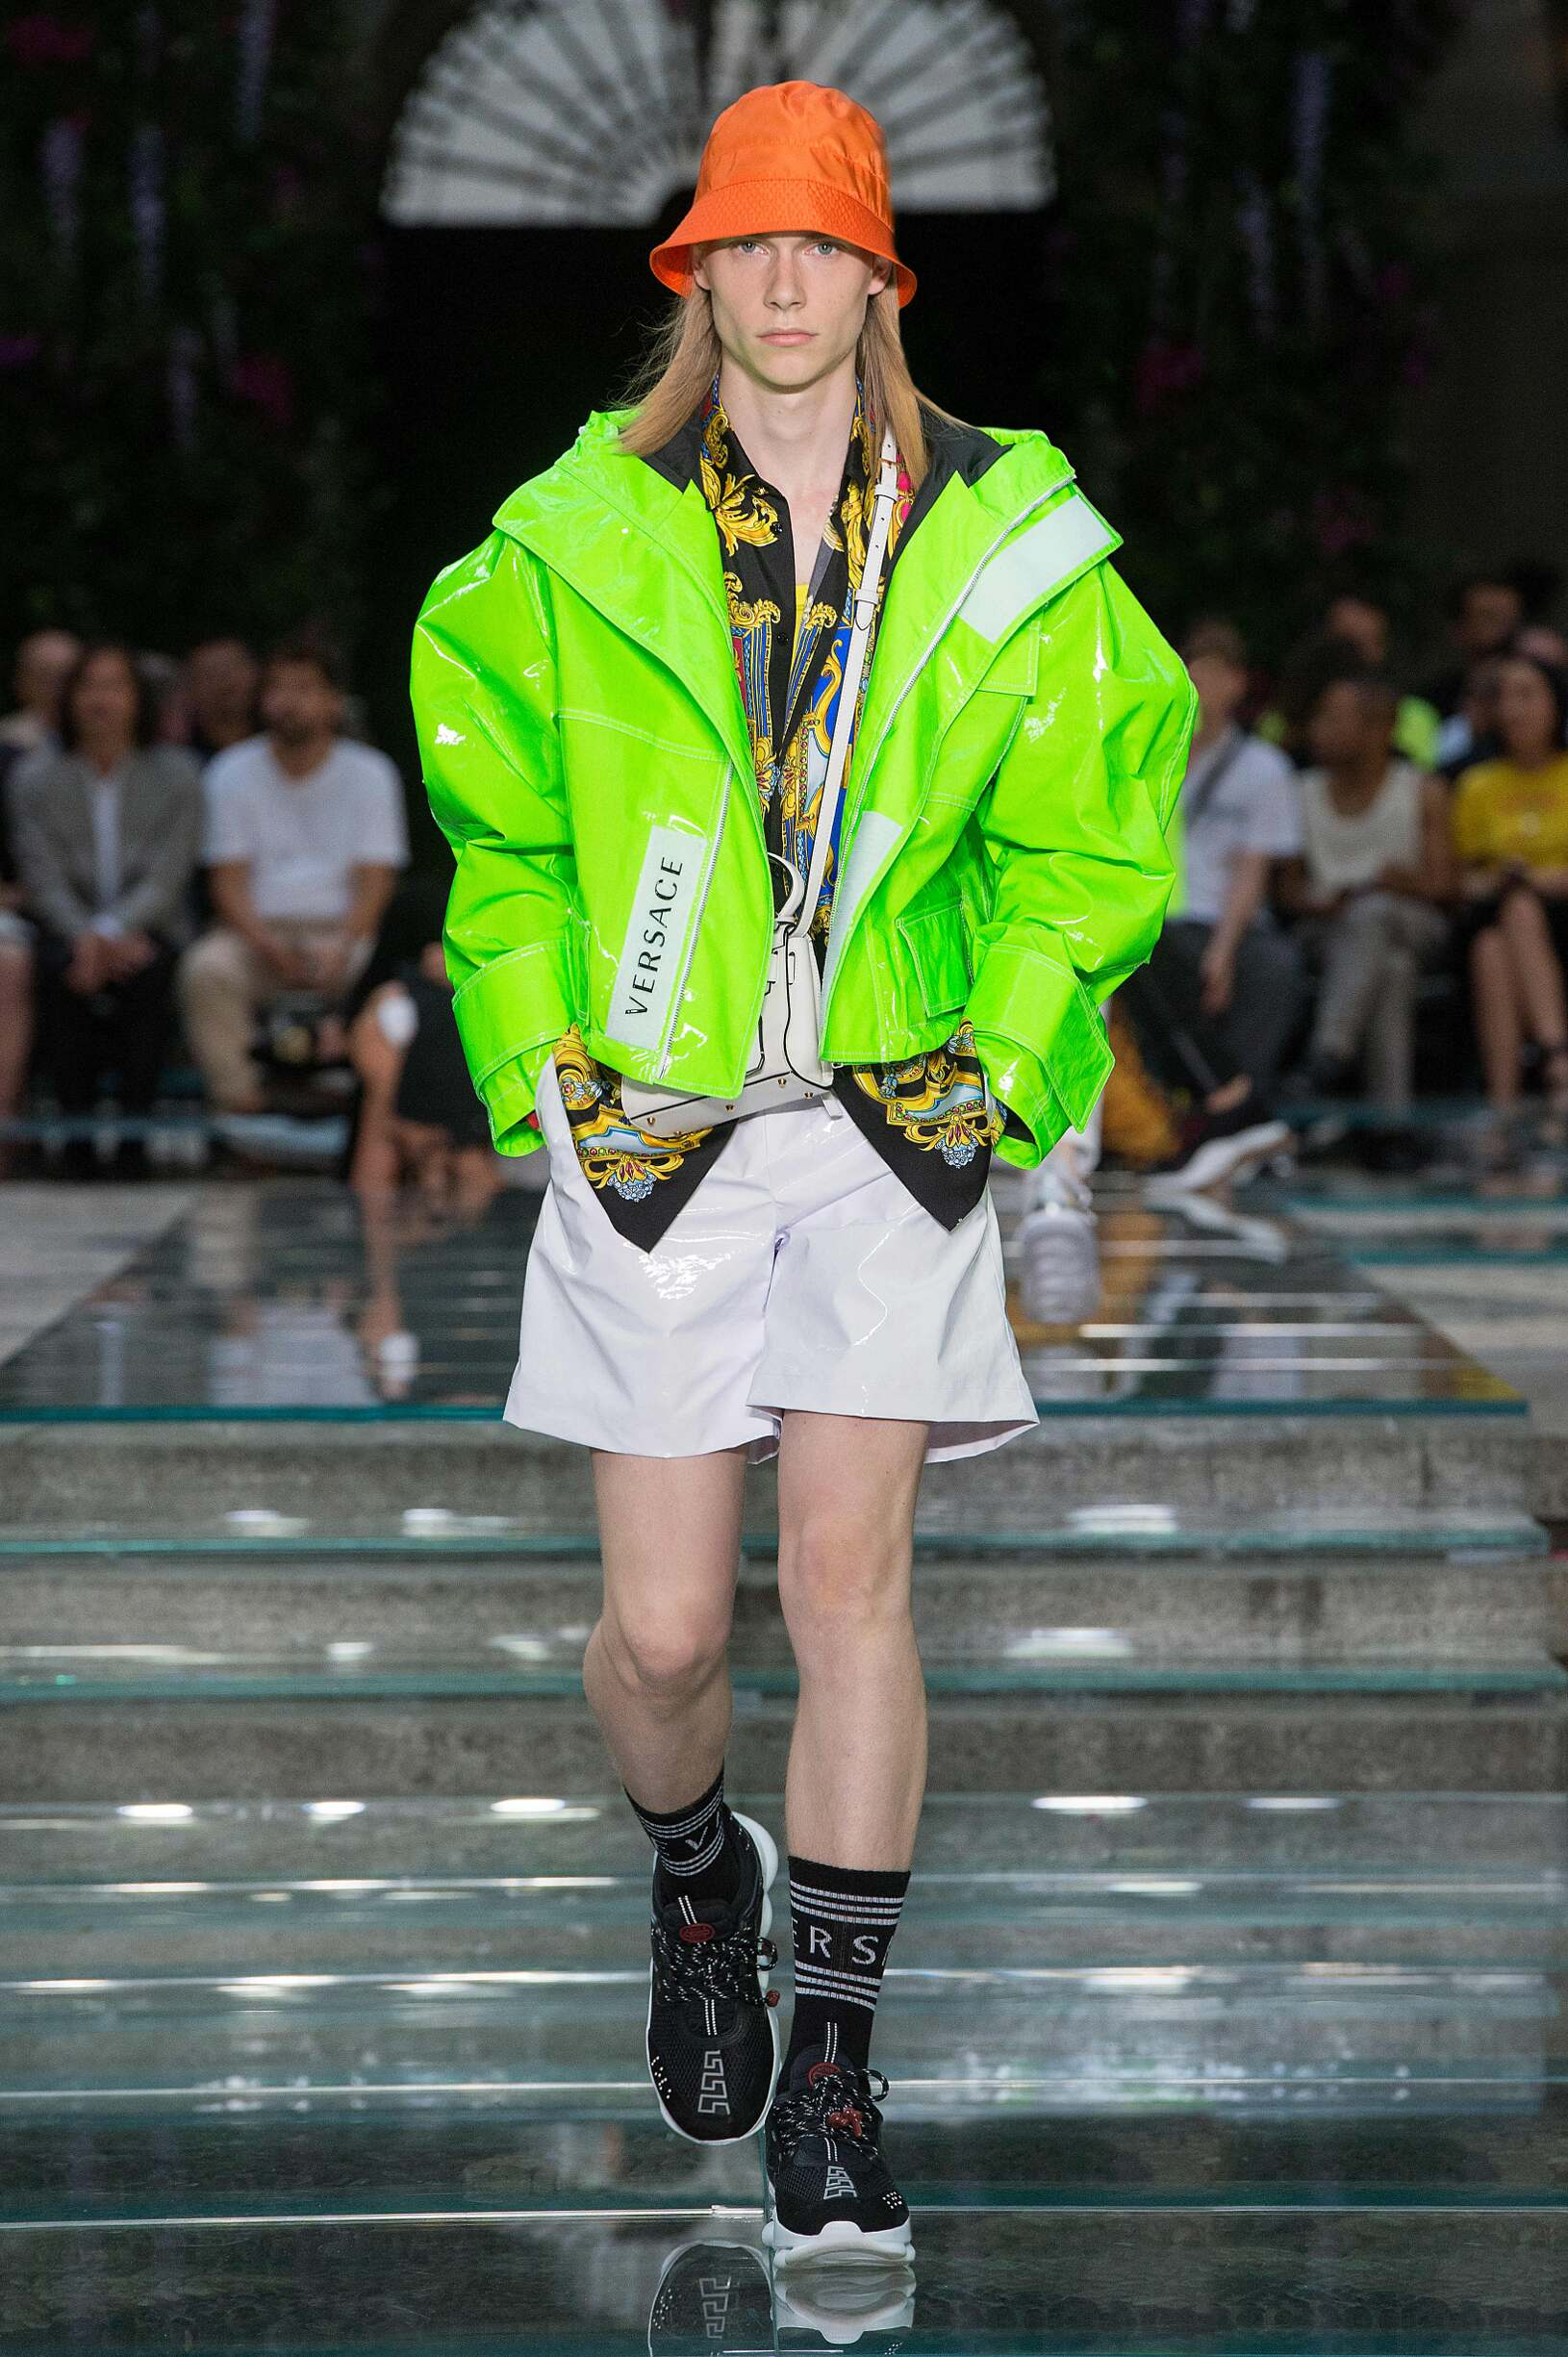 VERSACE SPRING SUMMER 2019 MENS COLLECTION  The Skinny Beep